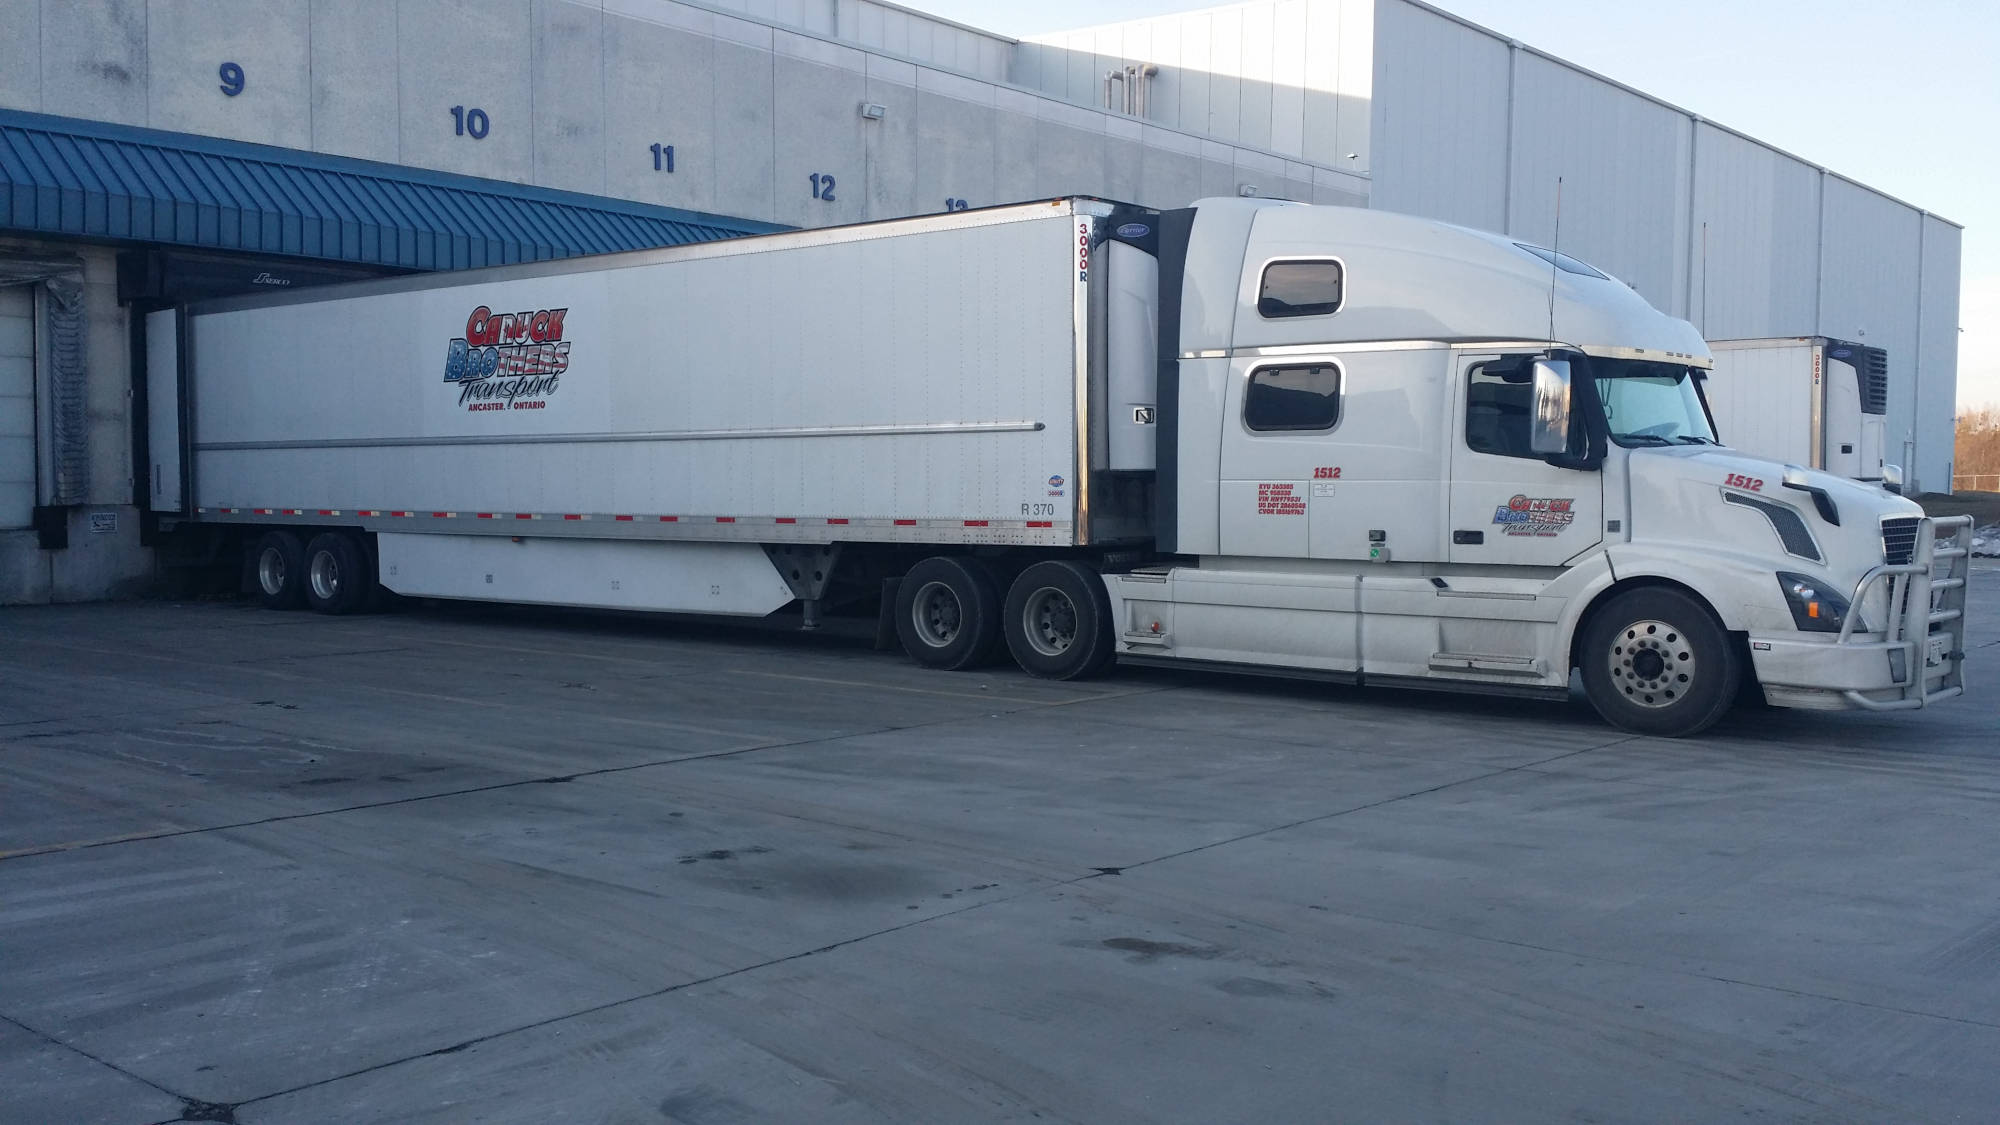 Canuck Brothers Truck docked